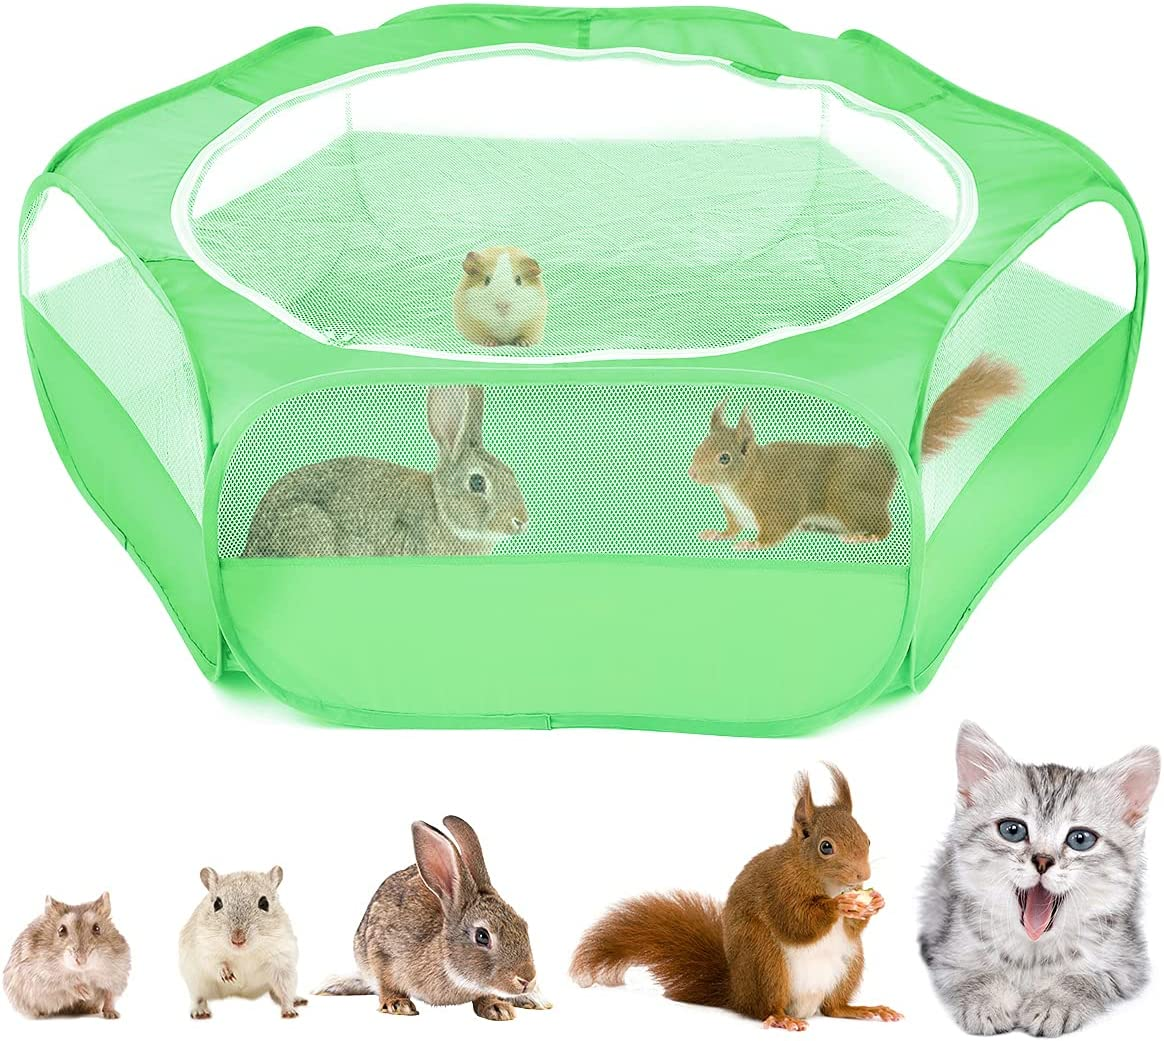 Outlet SALE VavoPaw Small Animals Playpen Breathable Mail order Pet Waterproof Indoor